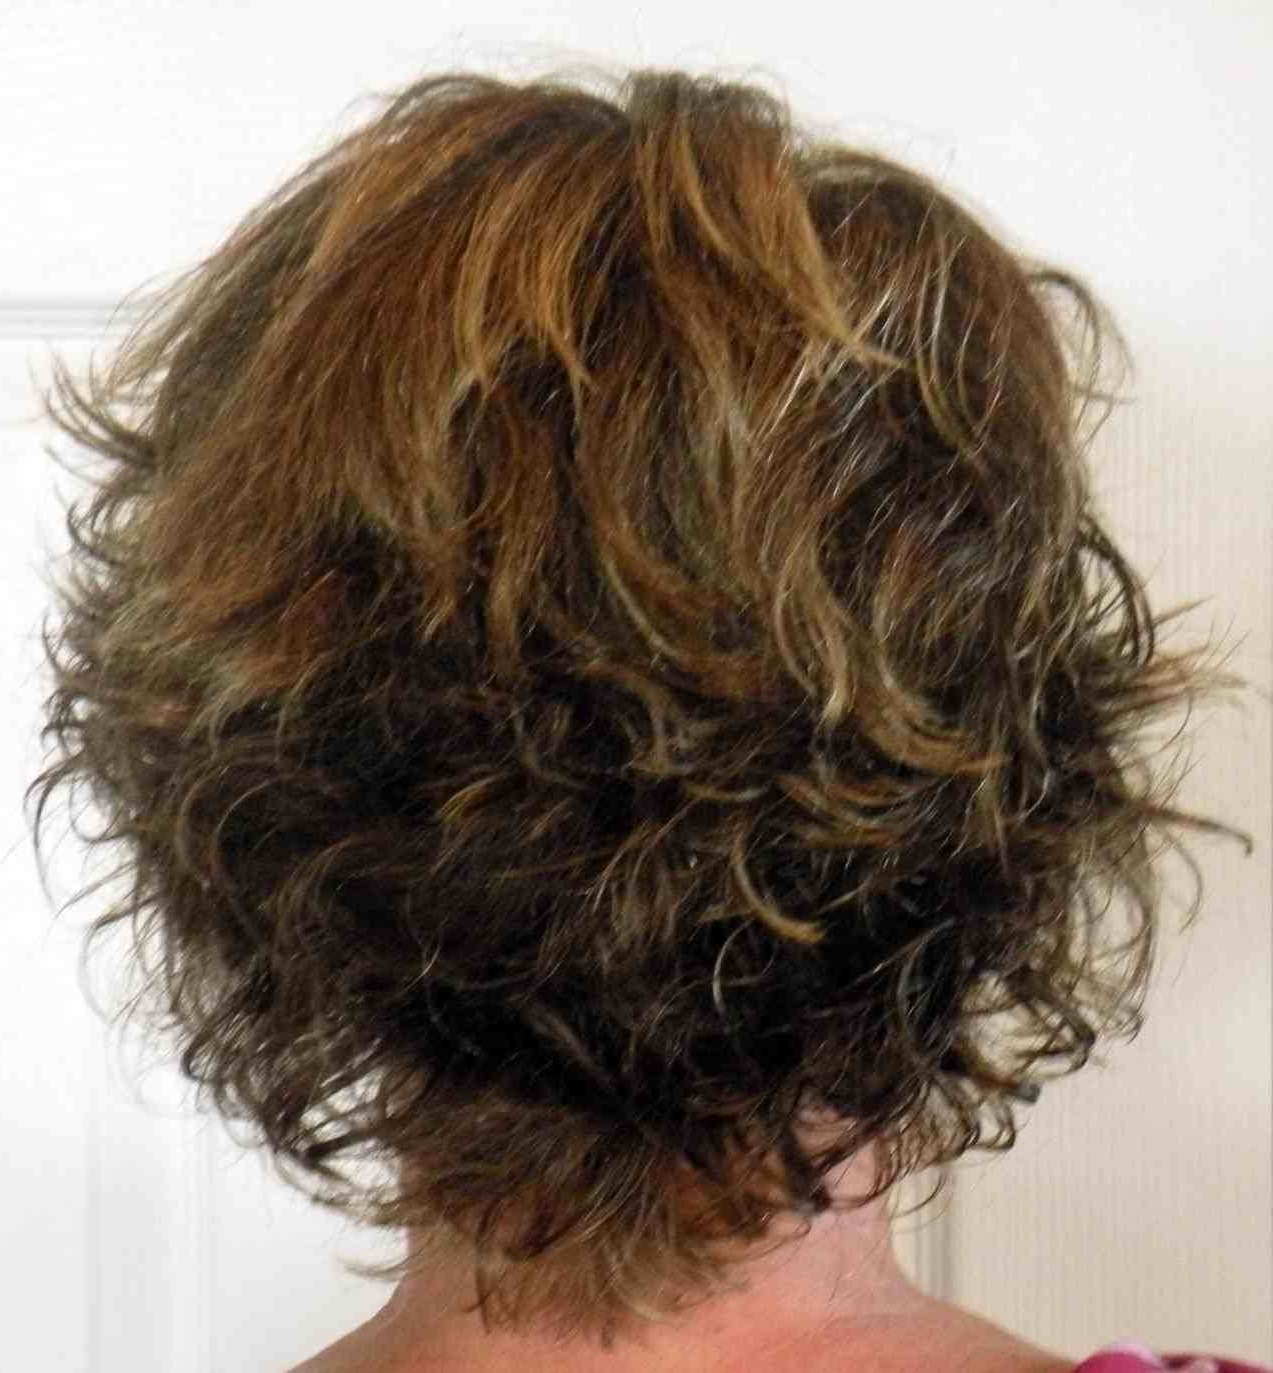 The Big River Within Famous Shaggy Hairstyles For Long Curly Hair (View 10 of 15)